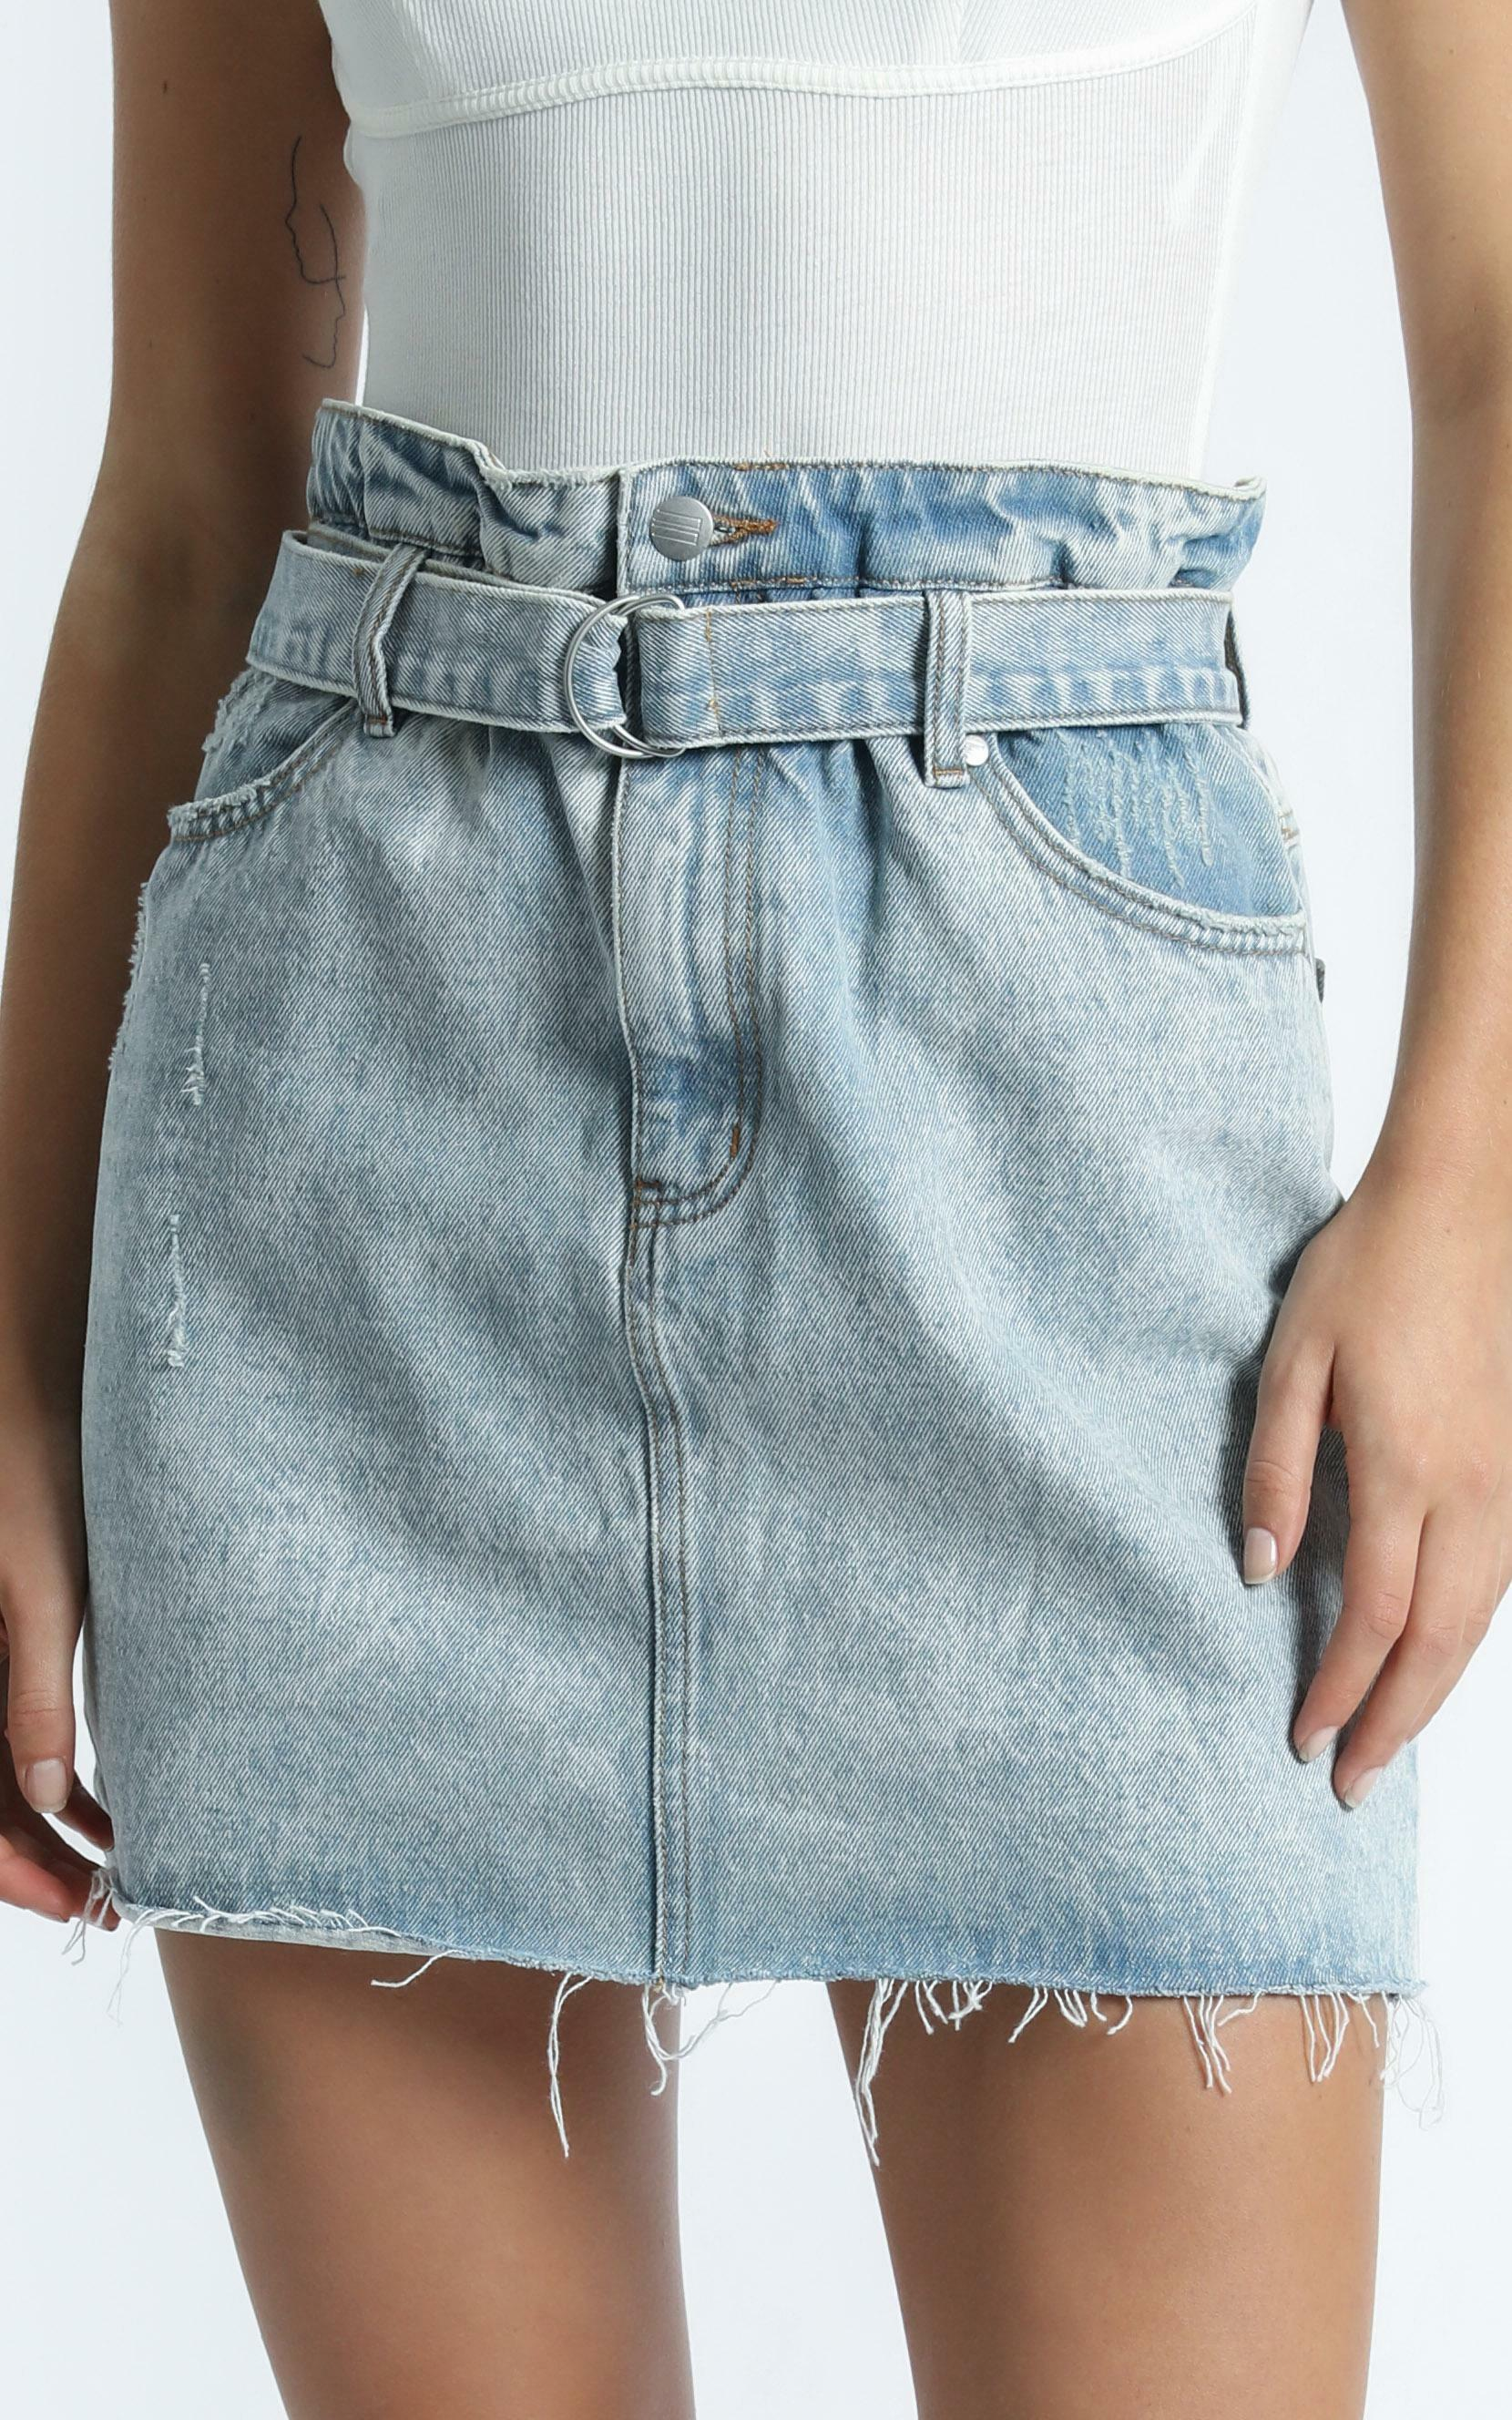 Twiin - Cinch Skirt in Light Blue Wash - XS, Blue, hi-res image number null